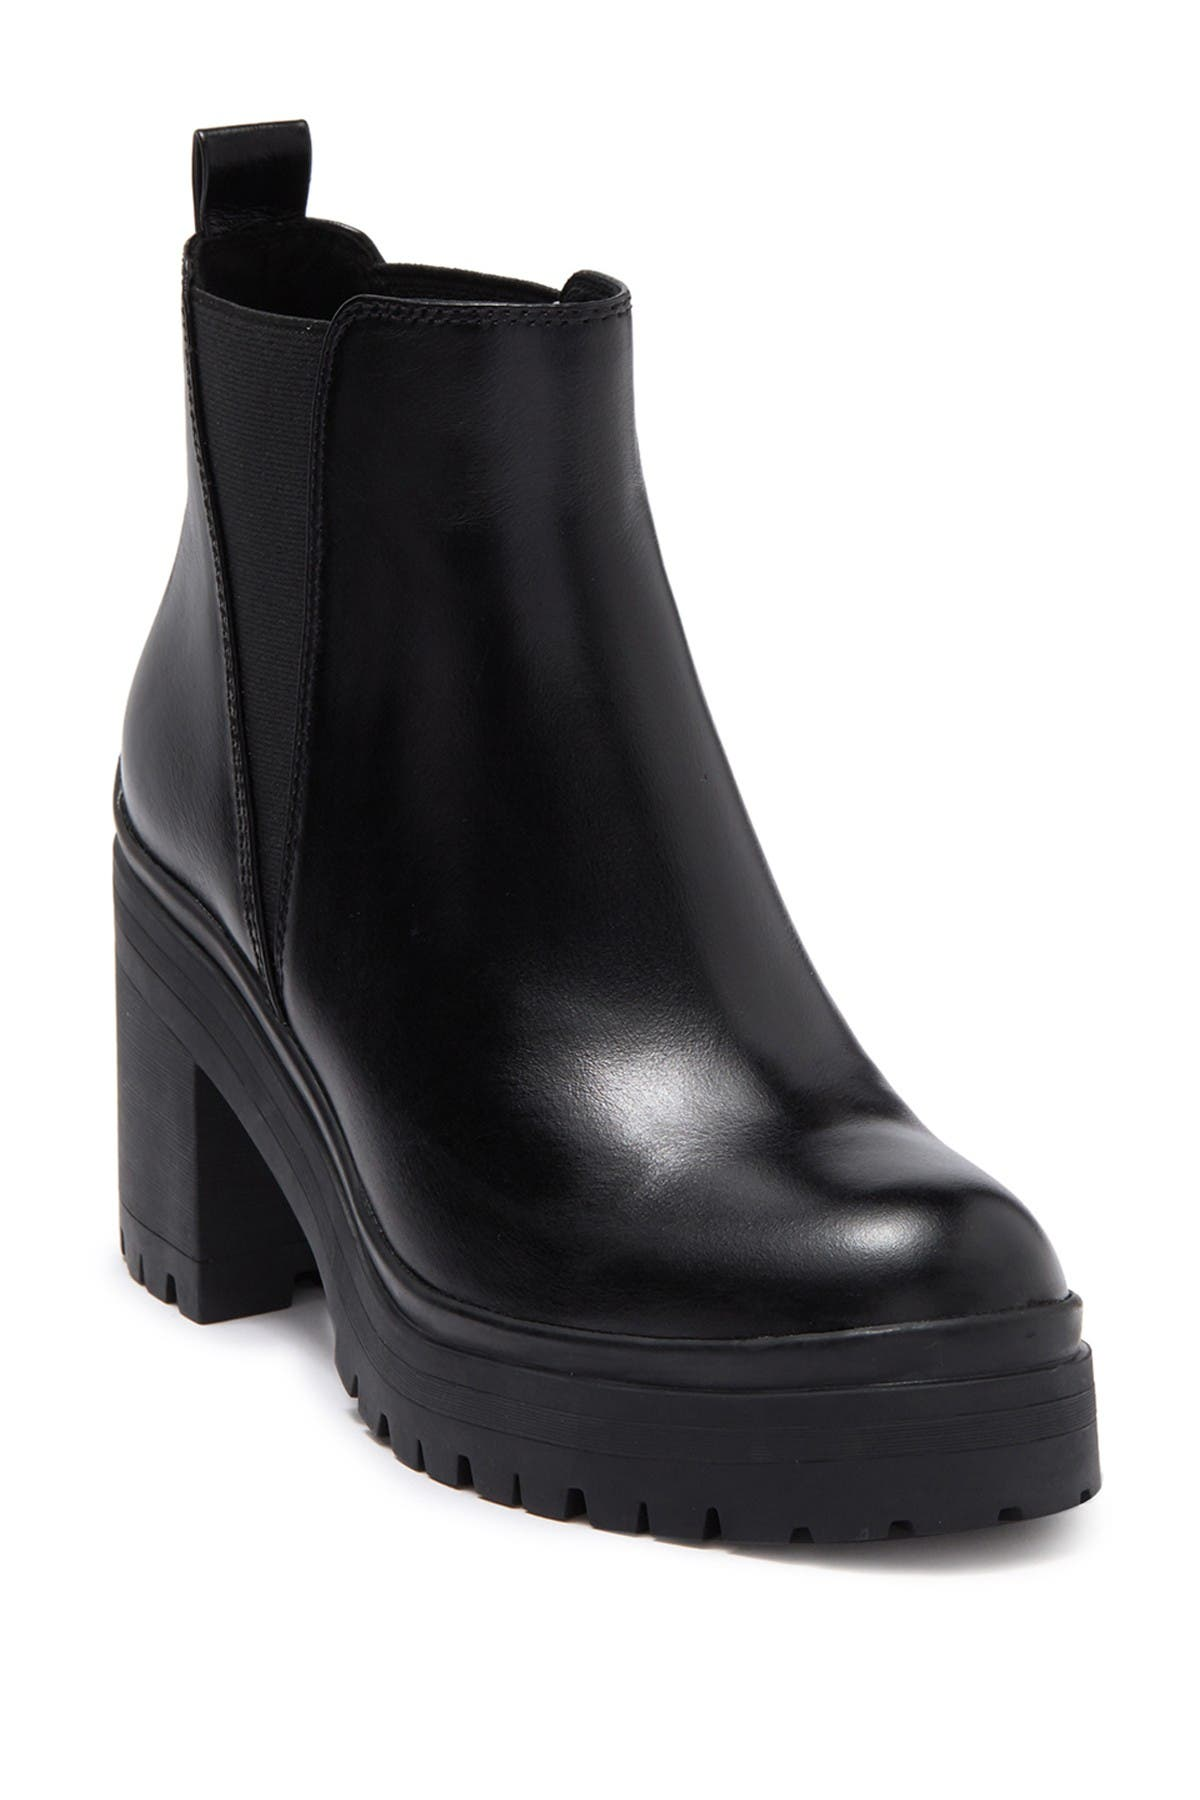 Image of Jeffrey Campbell Chunky Lug Chelsea Boot